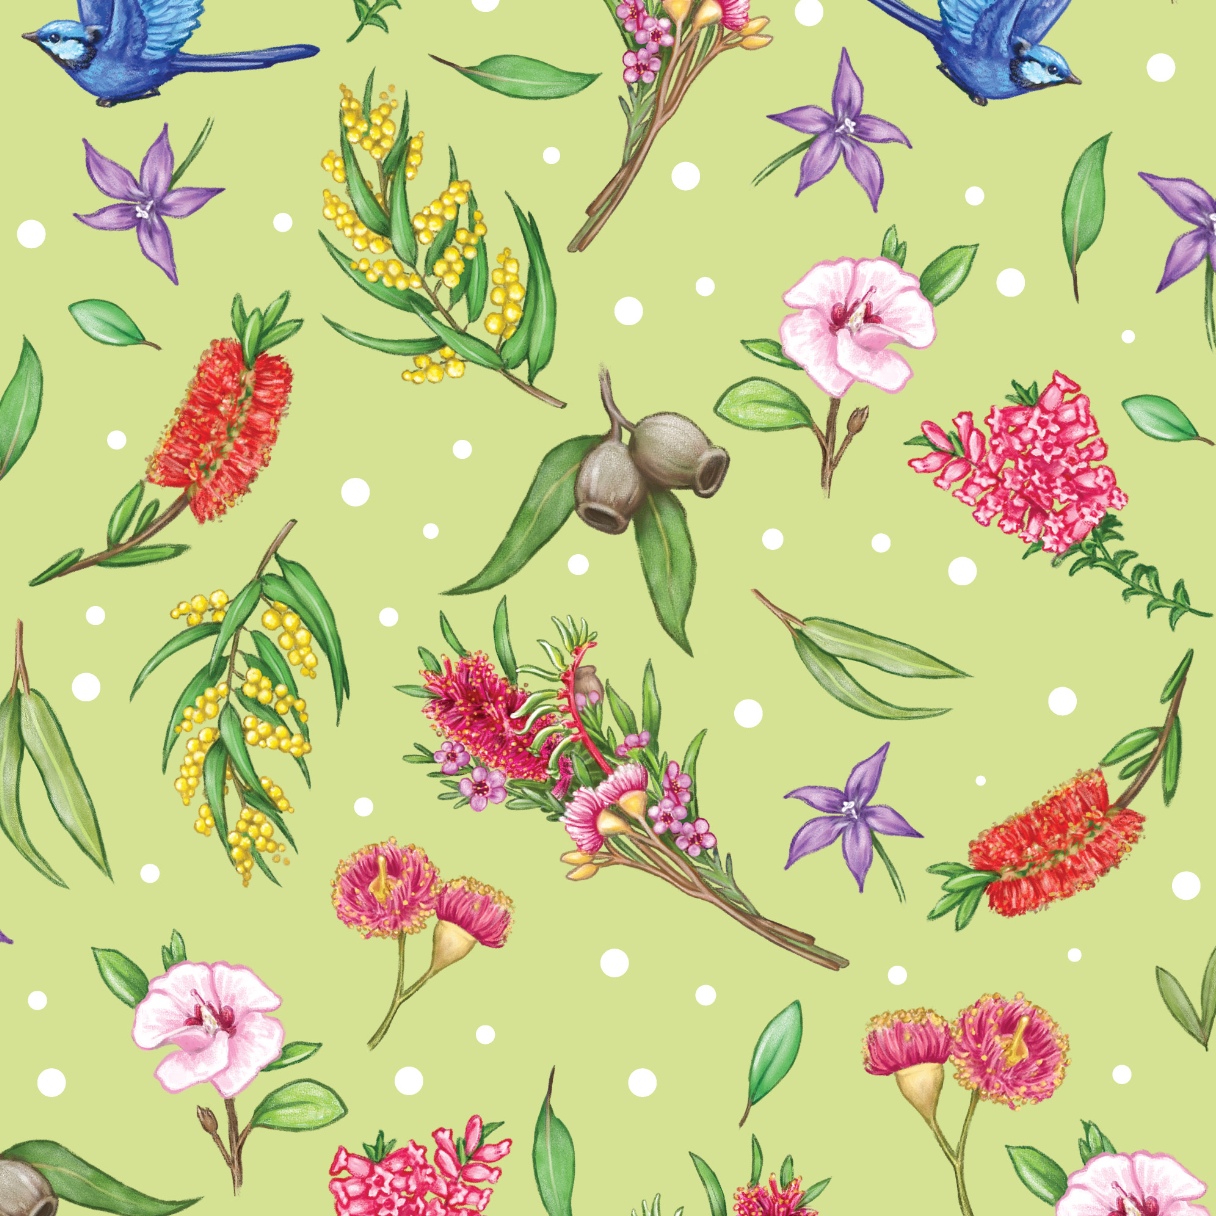 PRE ORDER - Aussie Garden Green - Digital Fabric Print